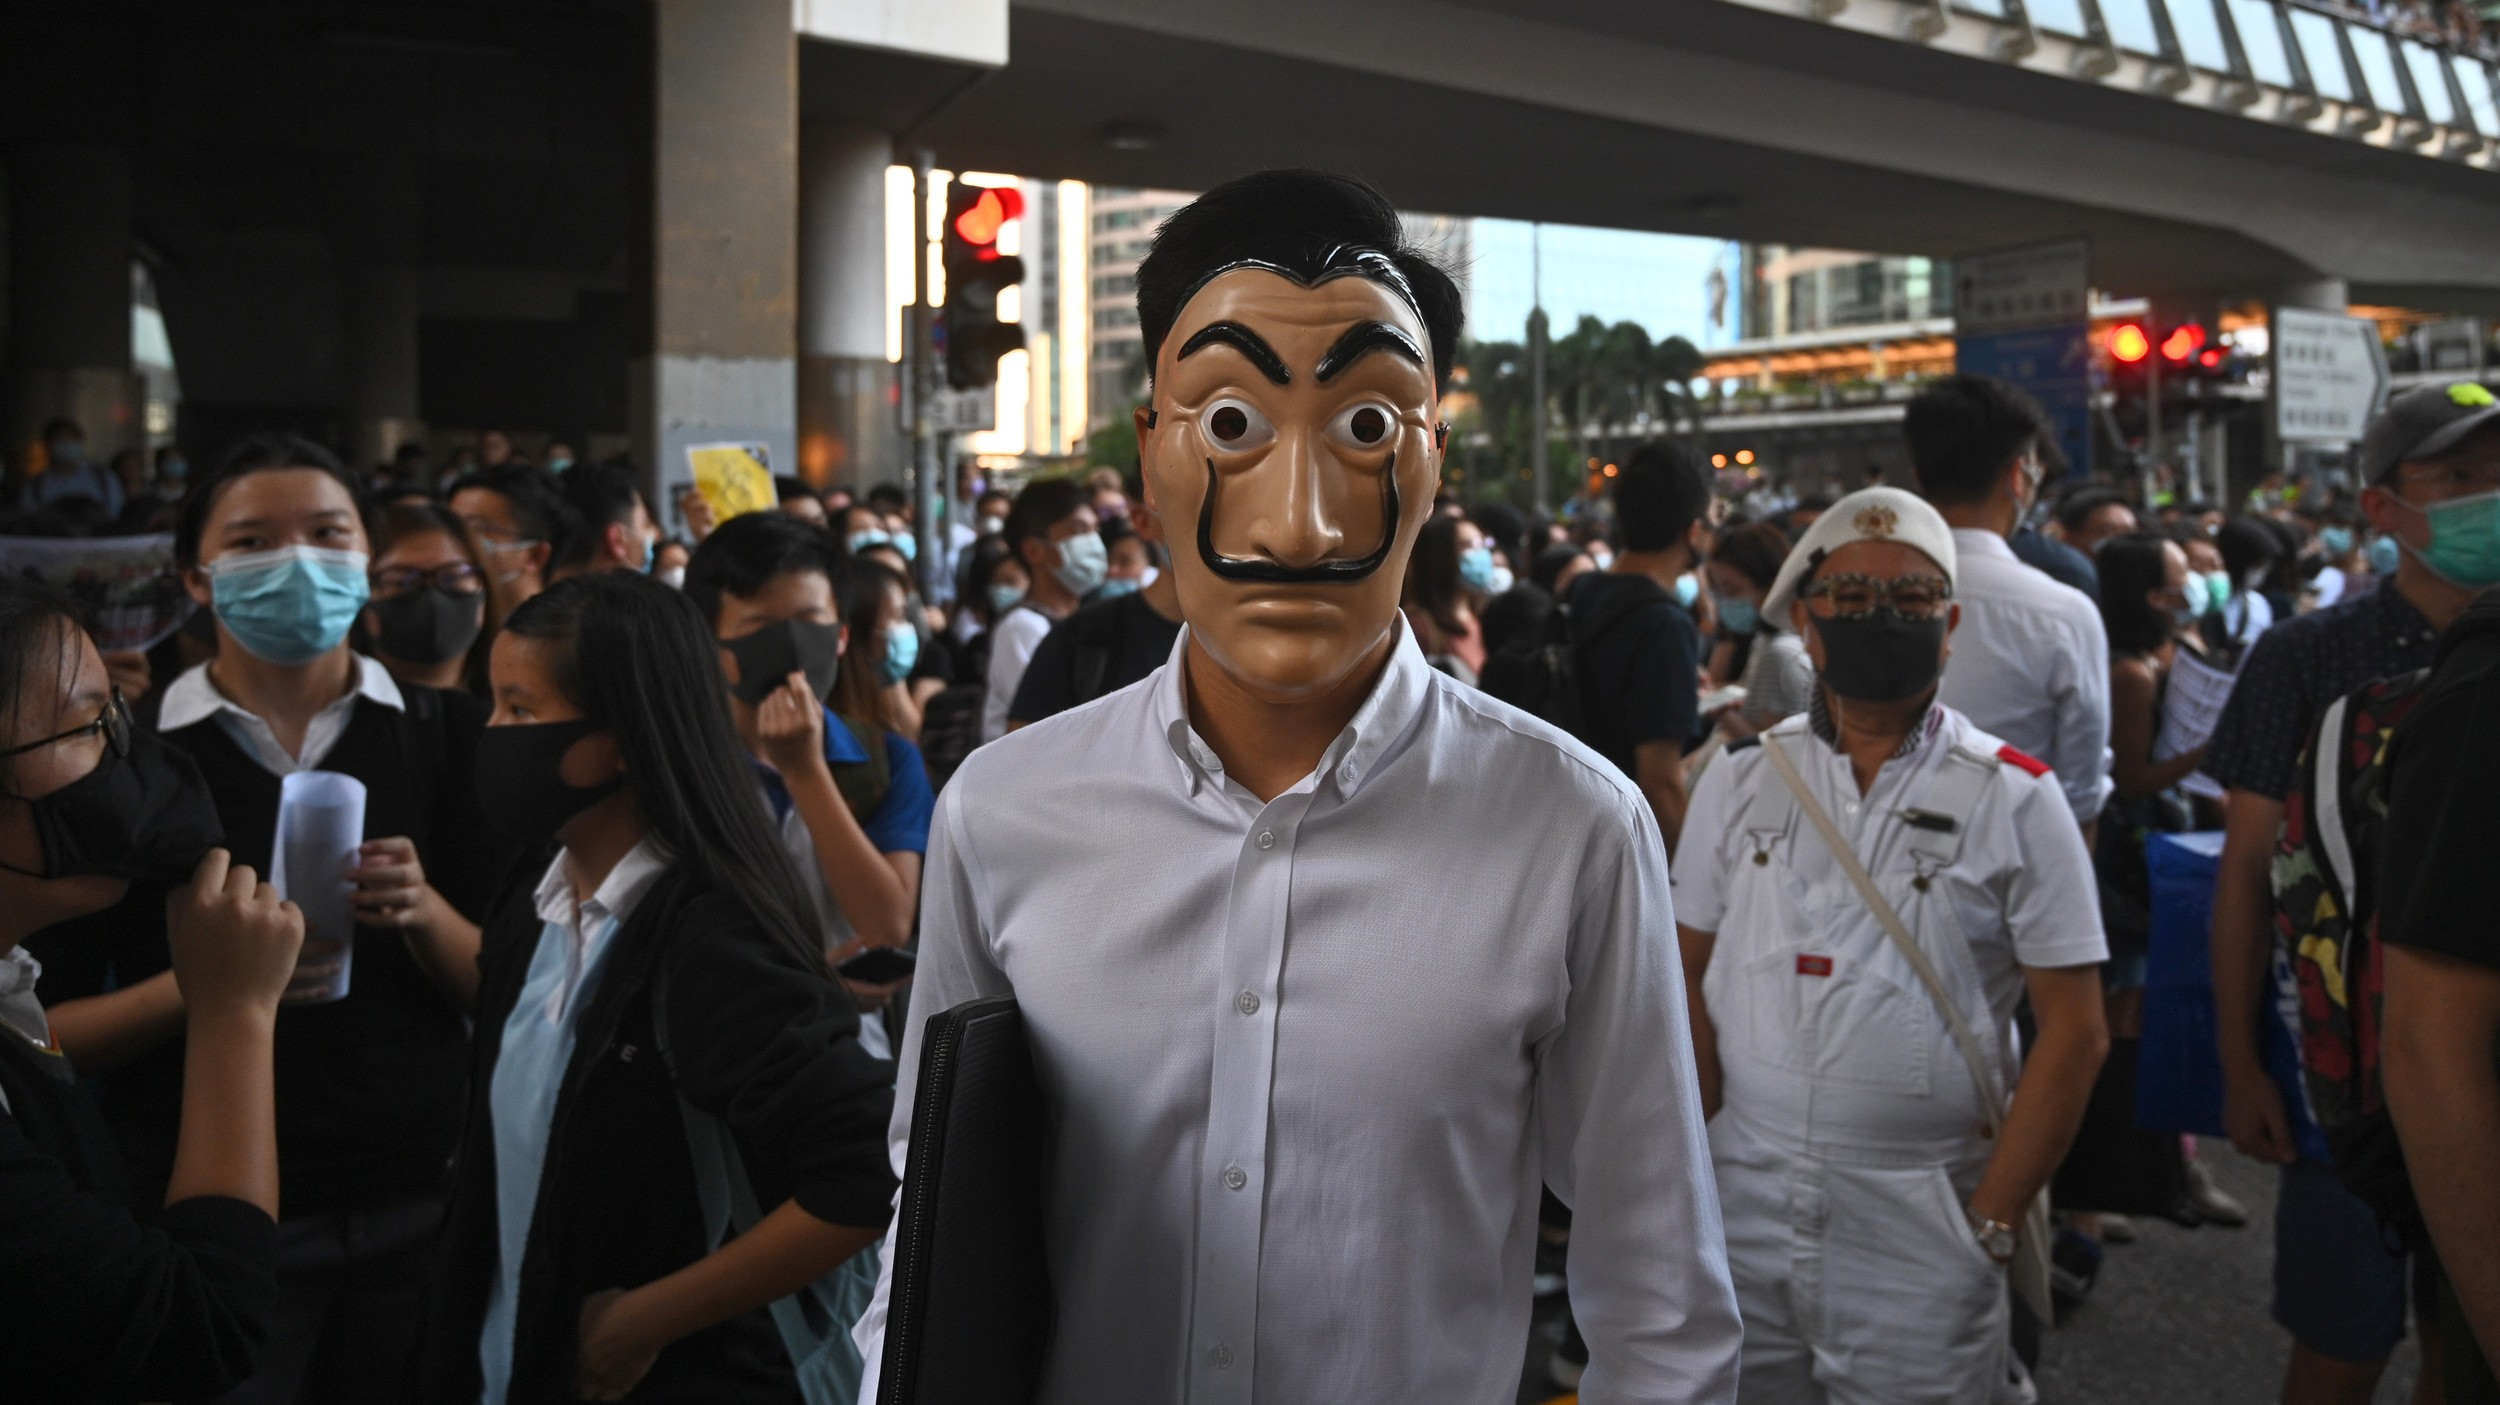 A man wearing a mask takes part in a protest in the Central business district in Hong Kong, Oct. 4, 2019. (Photo: AFP)